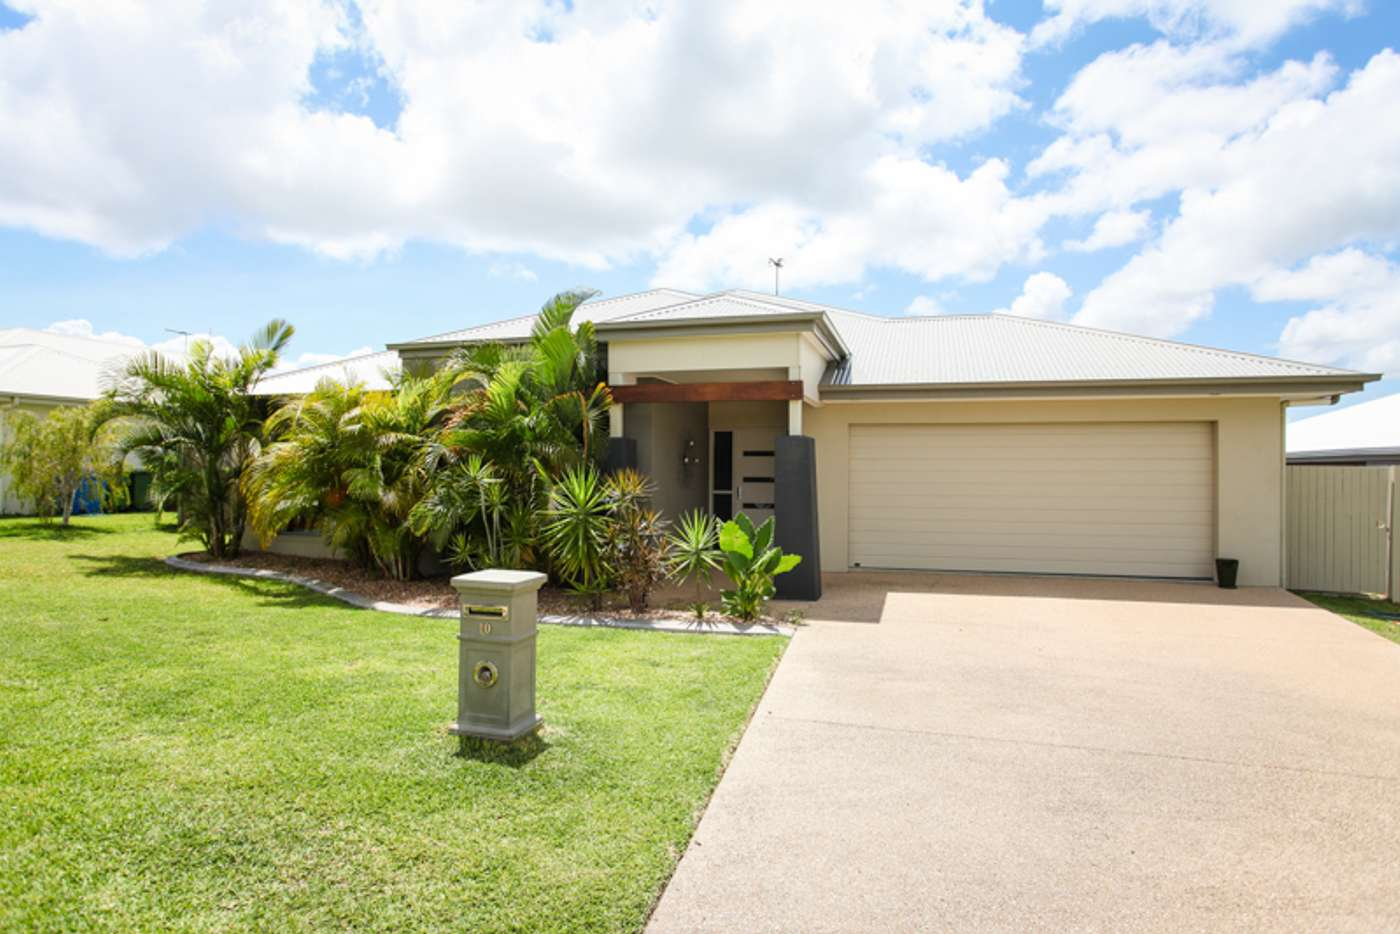 Main view of Homely house listing, 10 Bjelke Circuit, Rural View QLD 4740